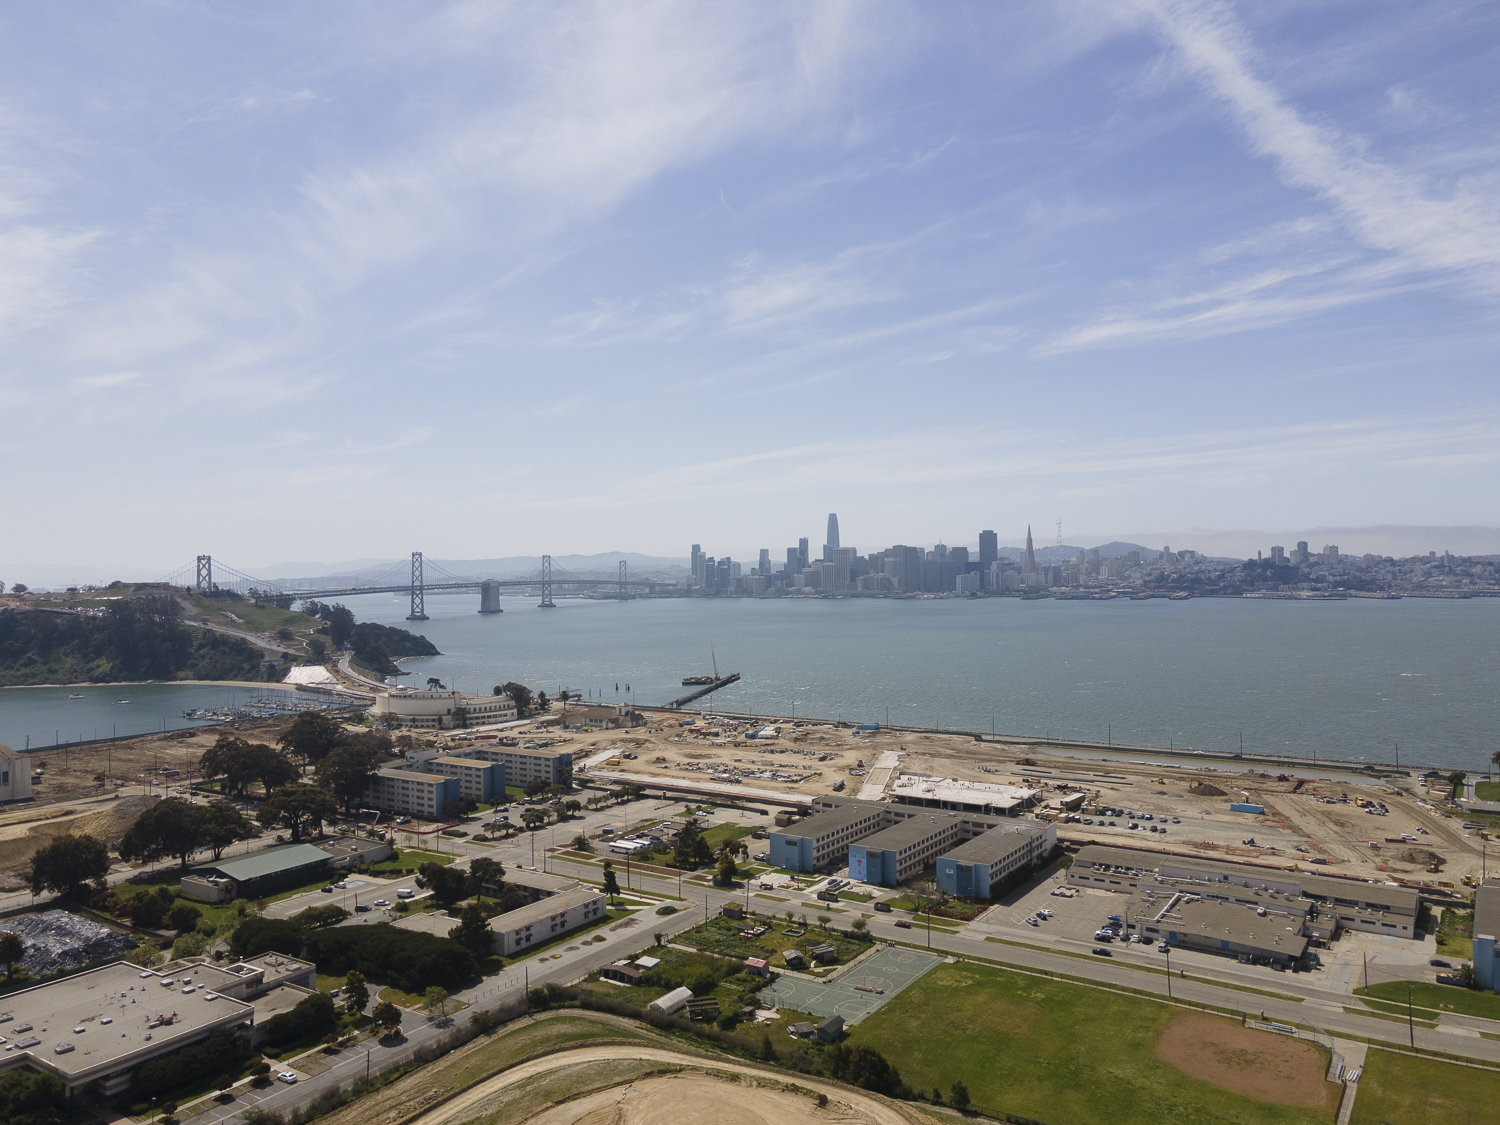 Treasure Island aerial view construction update, image by Andrew Campbell Nelson